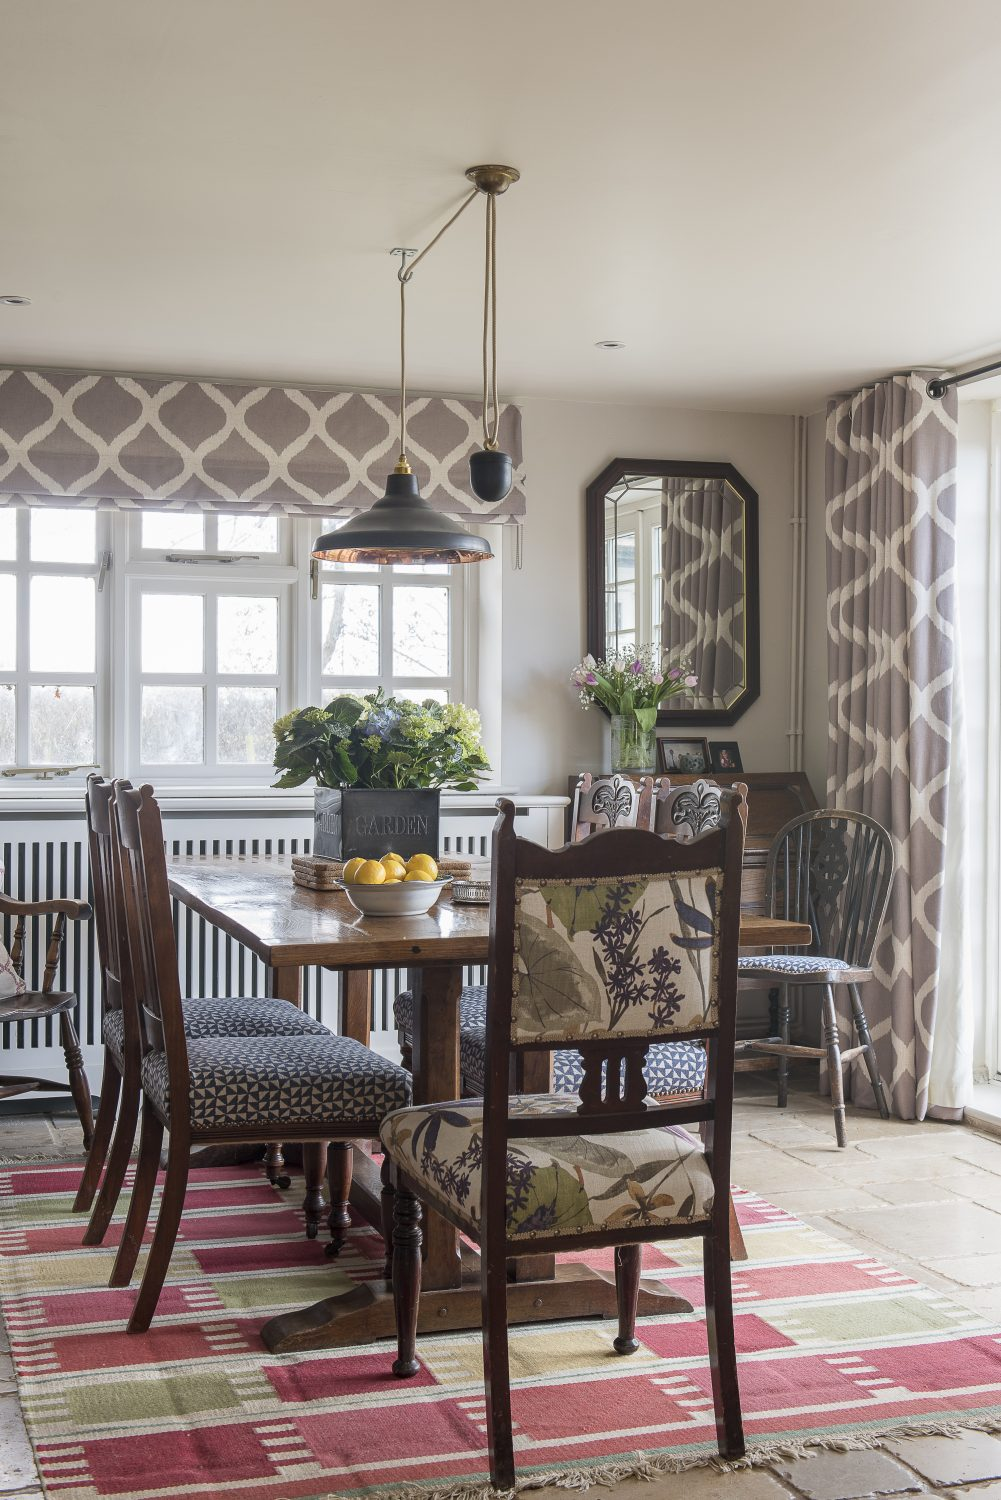 The main change Ally made in the dining room, was to turn Jo's table round, so it leads on invitingly from the kitchen. Ally had Jo's existing dining chairs recovered in a mix of prints to contrast the graphic design of the curtains and blinds